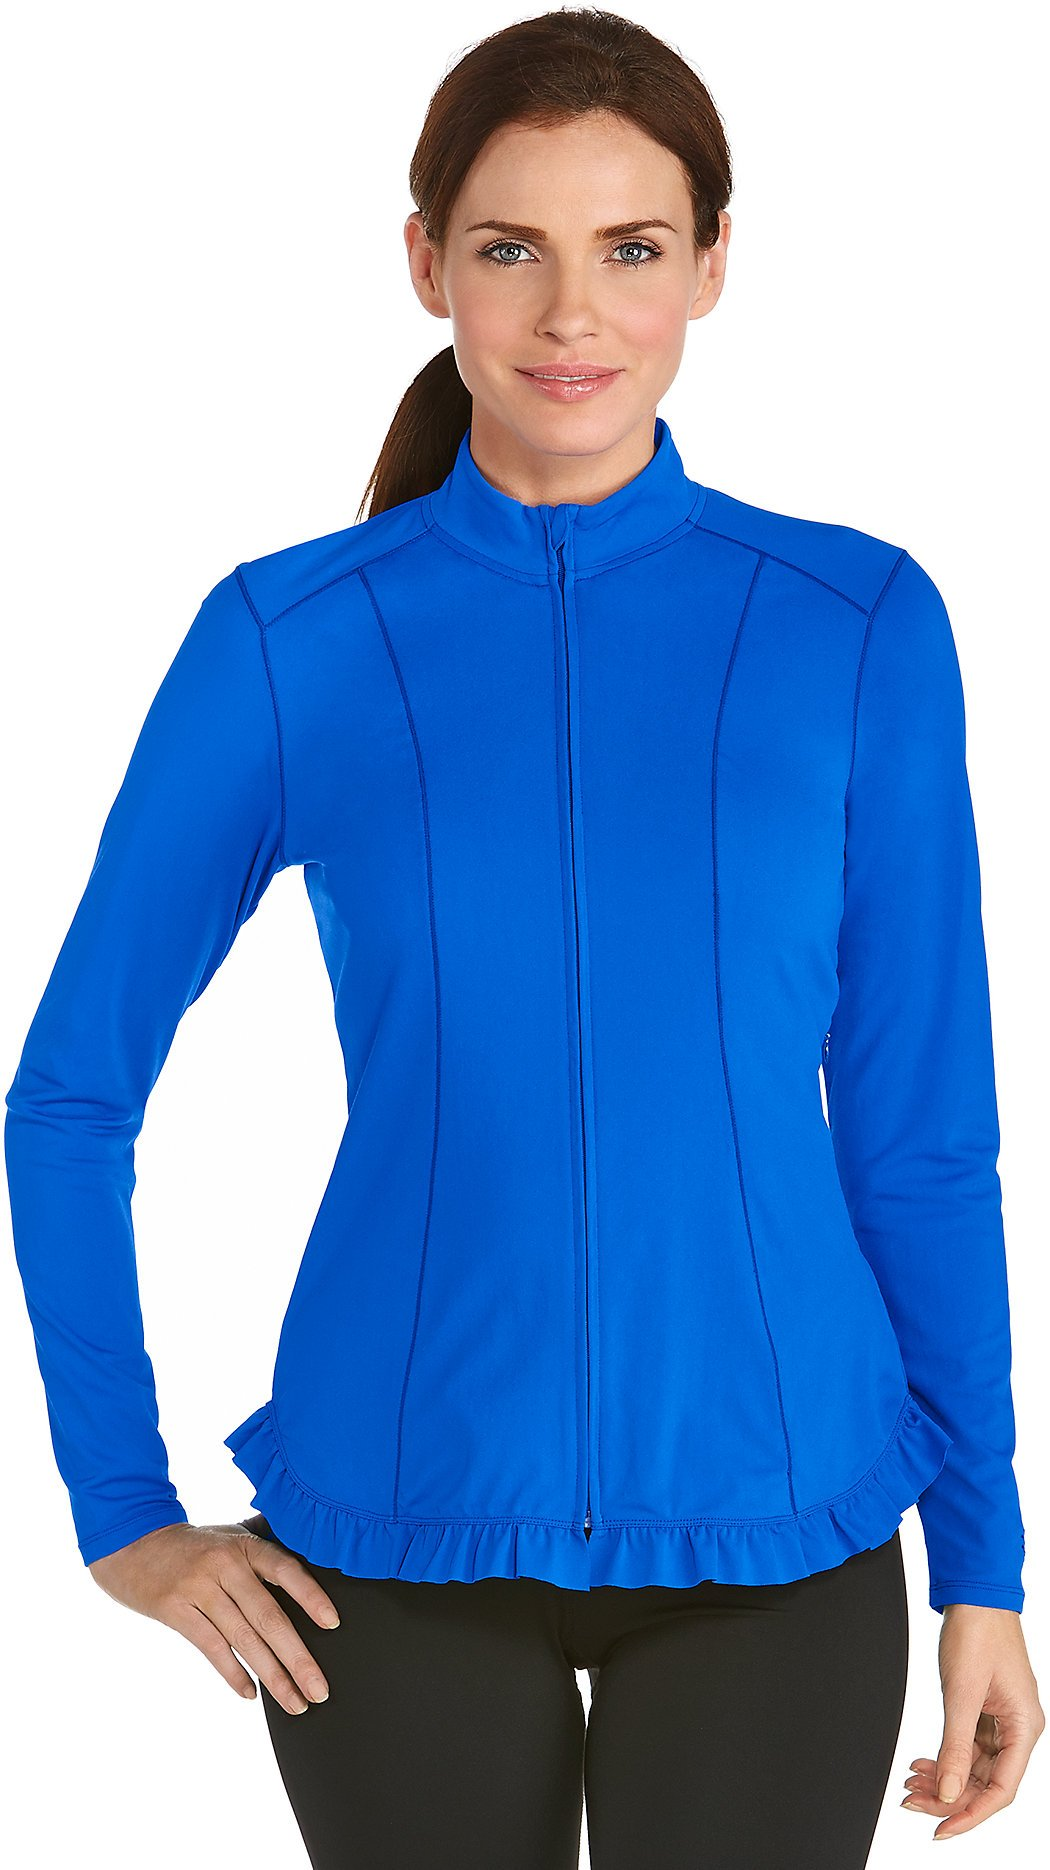 Coolibar UPF 50+ Women's Swim Jacket - Sun Protective (Medium- Baja Blue)